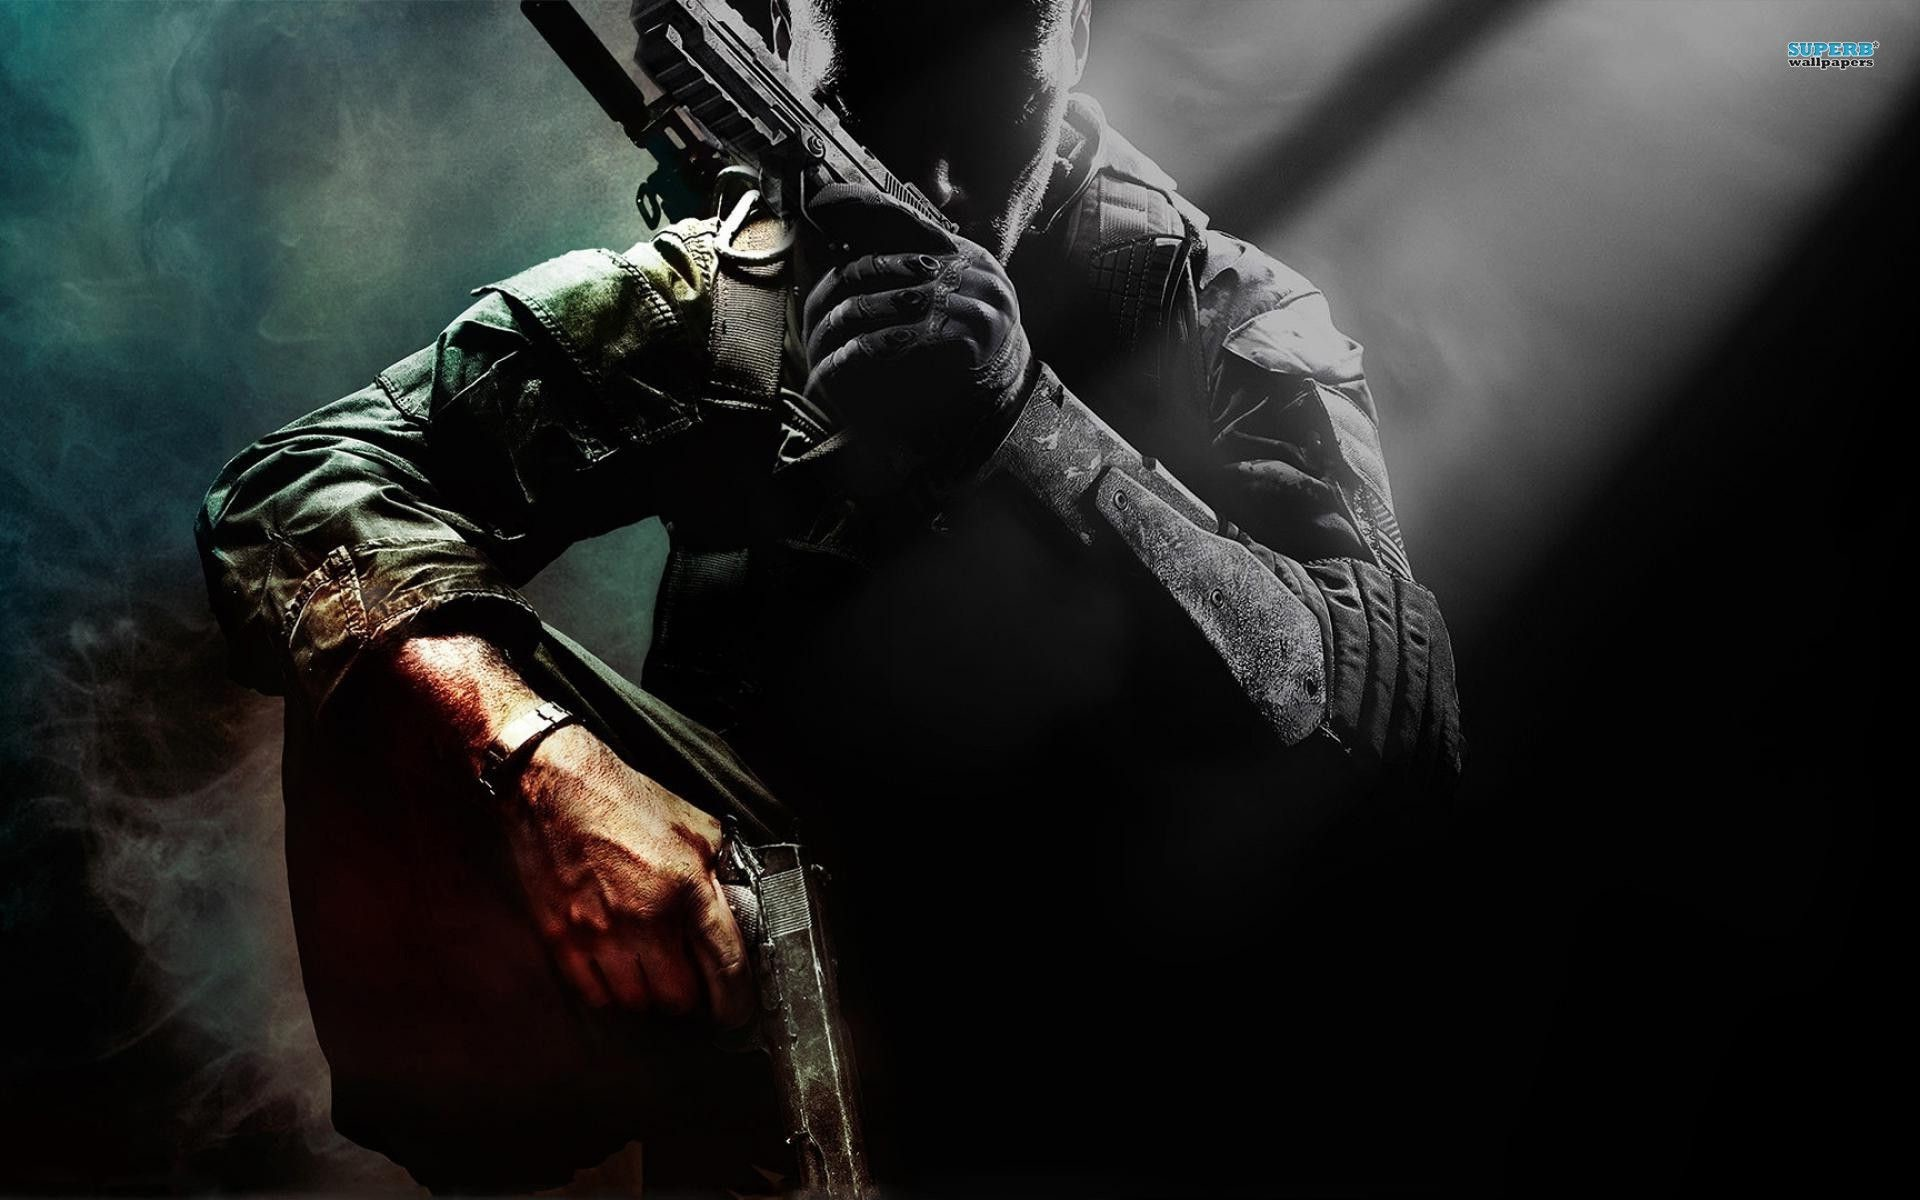 … call of duty black ops 2 wallpapers on kubipet com …